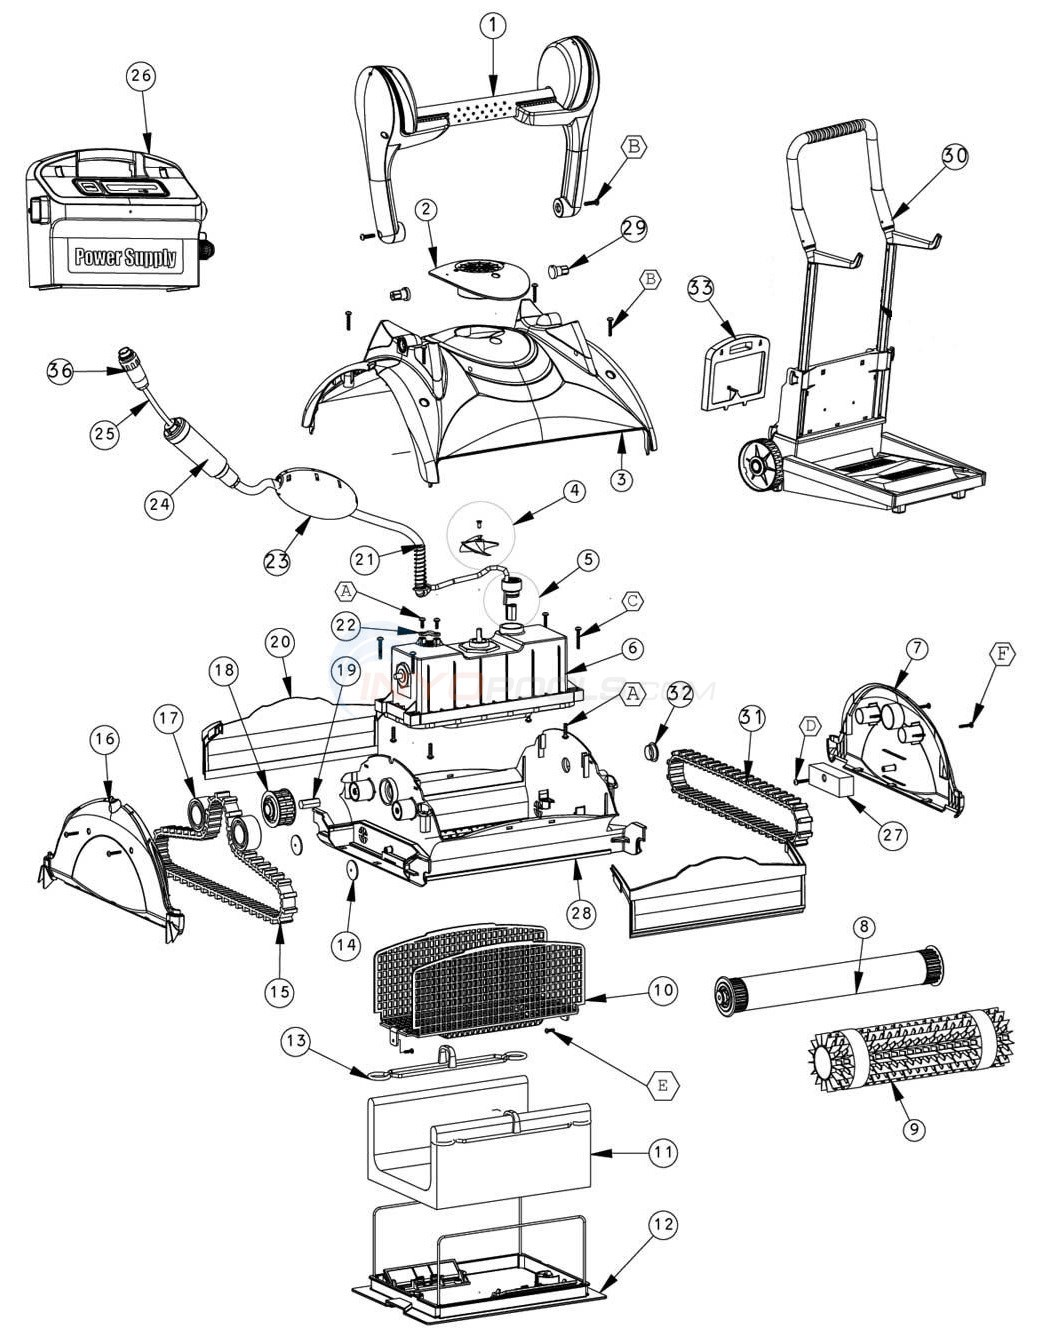 Vw Engine Breakdown, Vw, Free Engine Image For User Manual